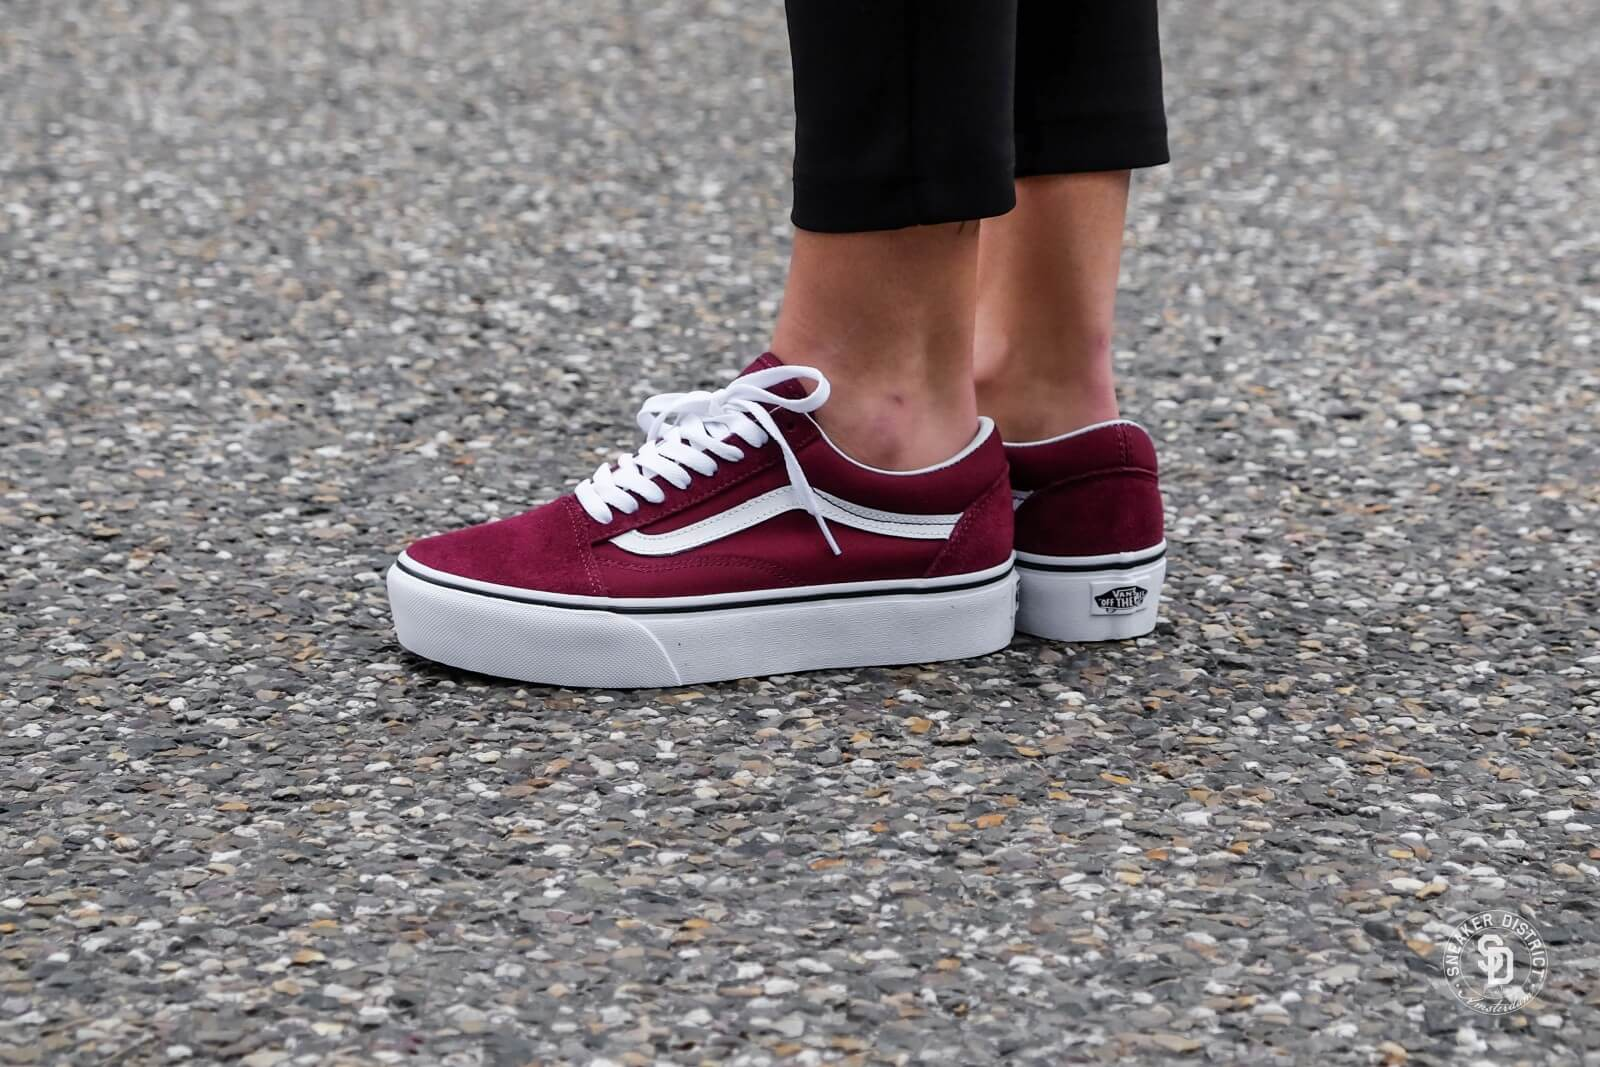 vans old skool platform vs normal, Chaussures basses | Chaussures ...